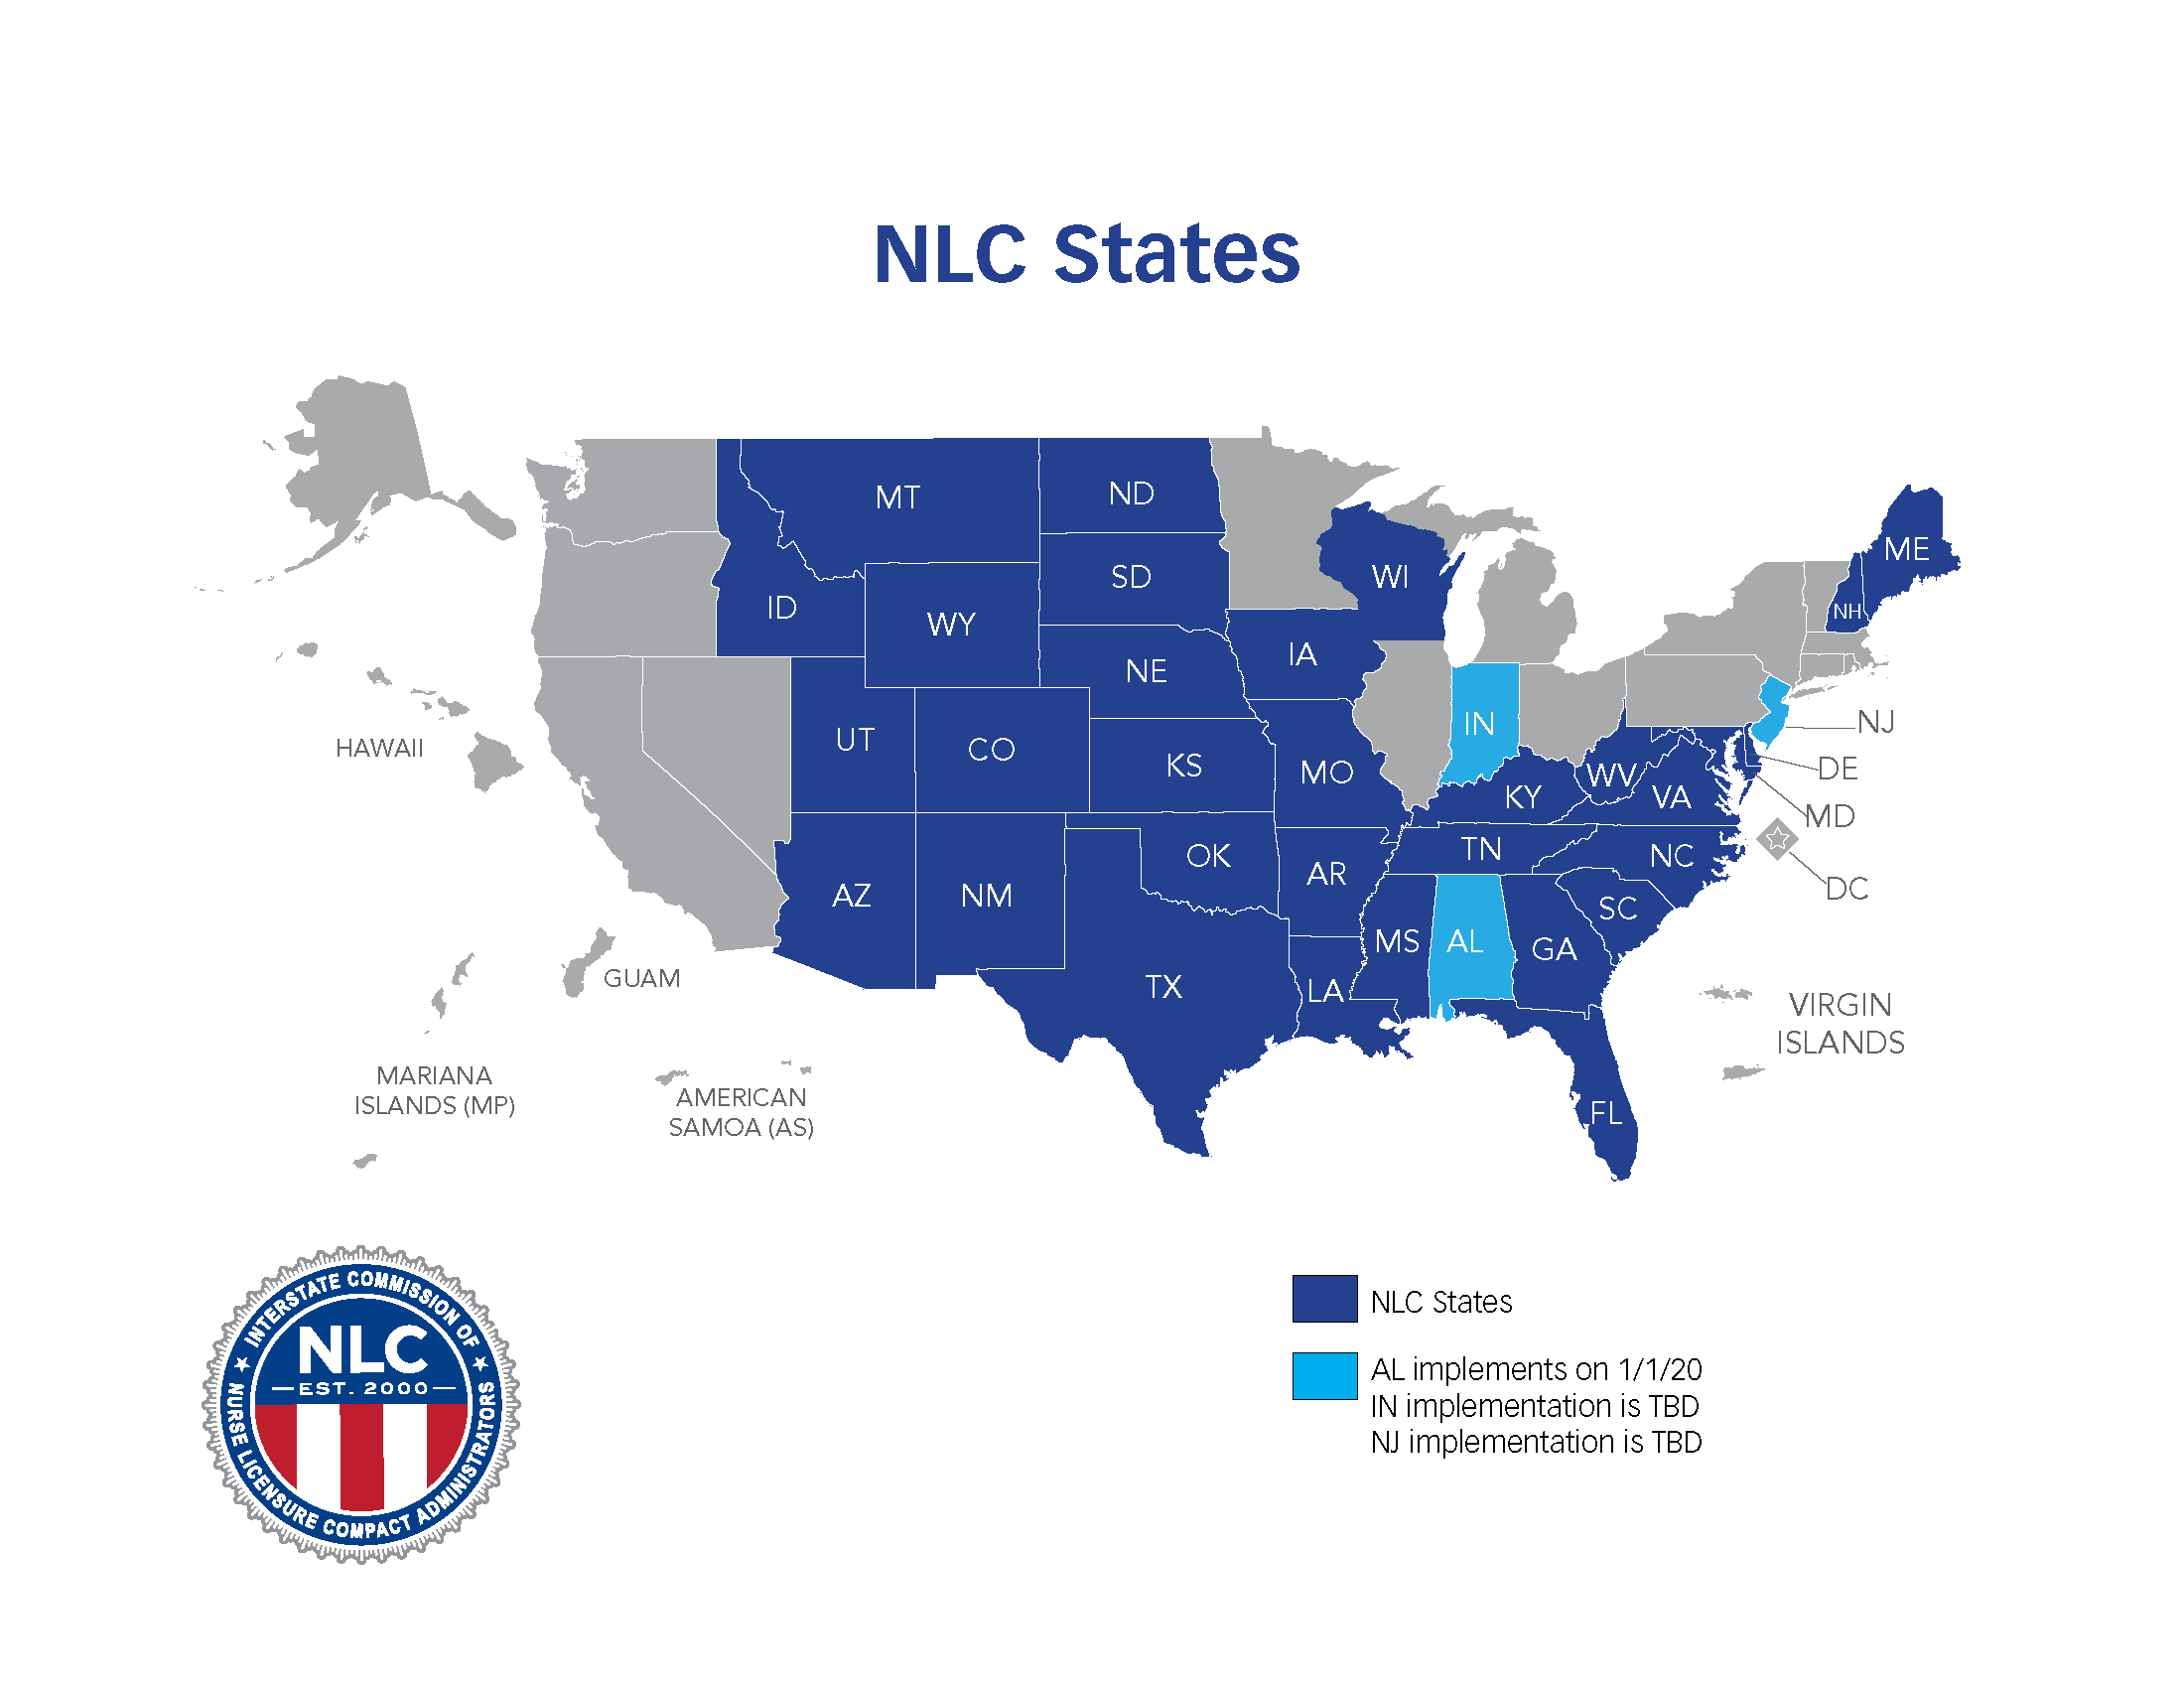 Nurse Licensure Compact Information and Participating States